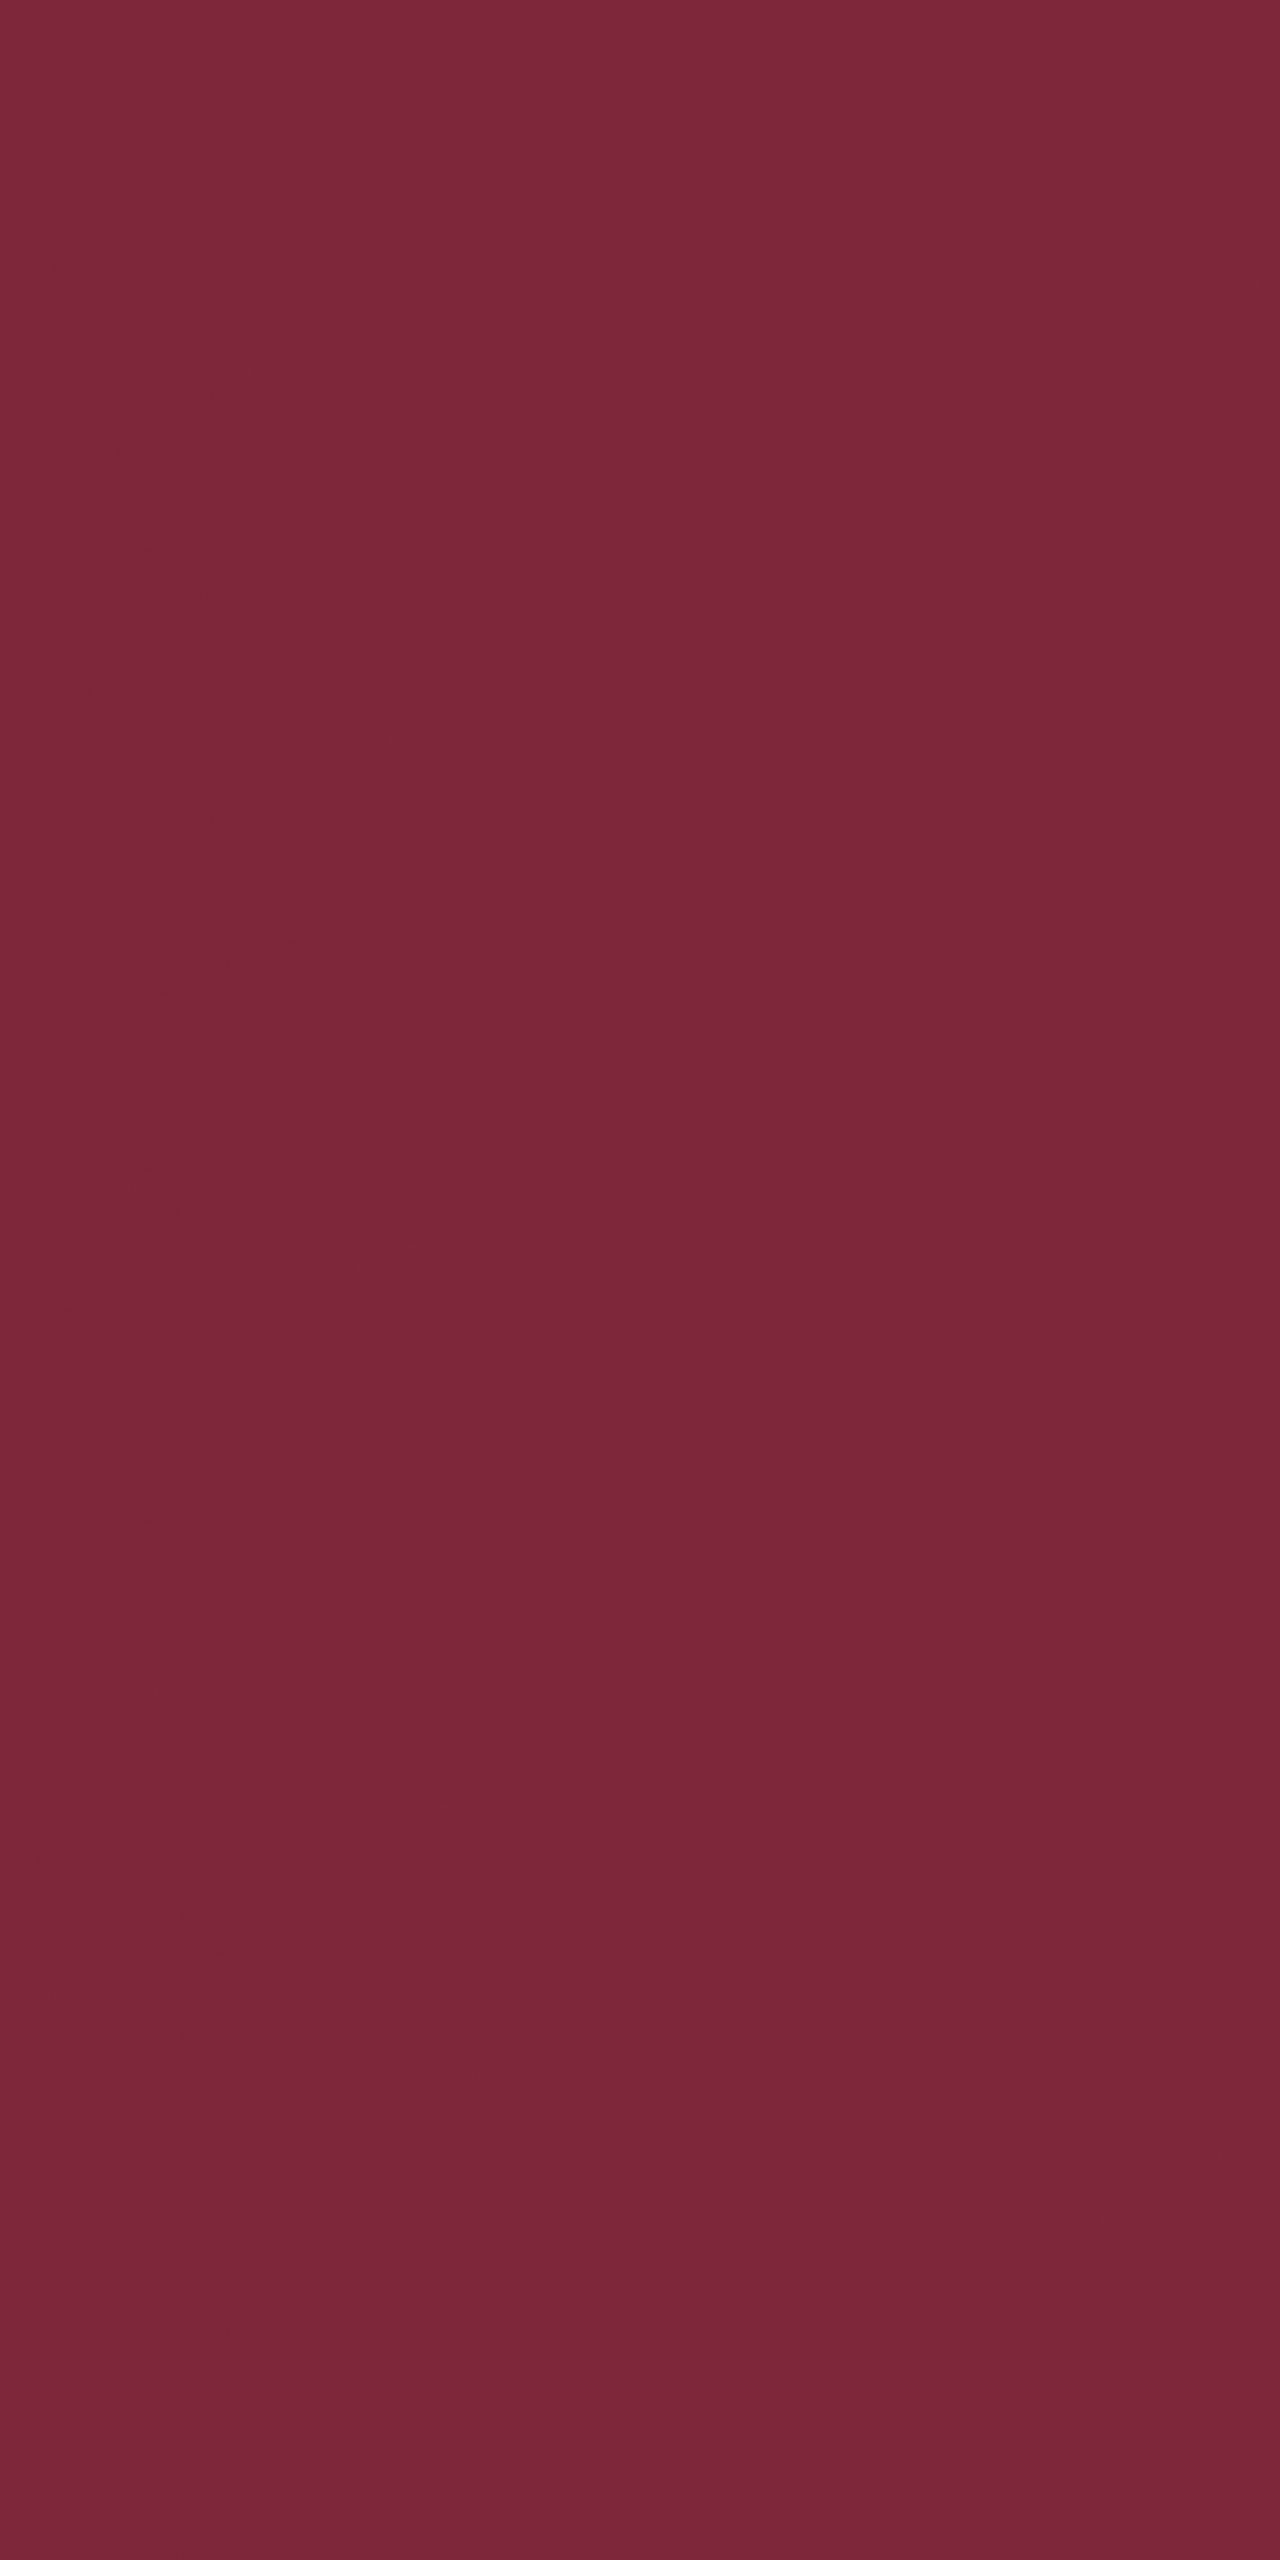 Buildtech 2.0 Bold Colors Burgundy Glossy 6mm 60 x 120